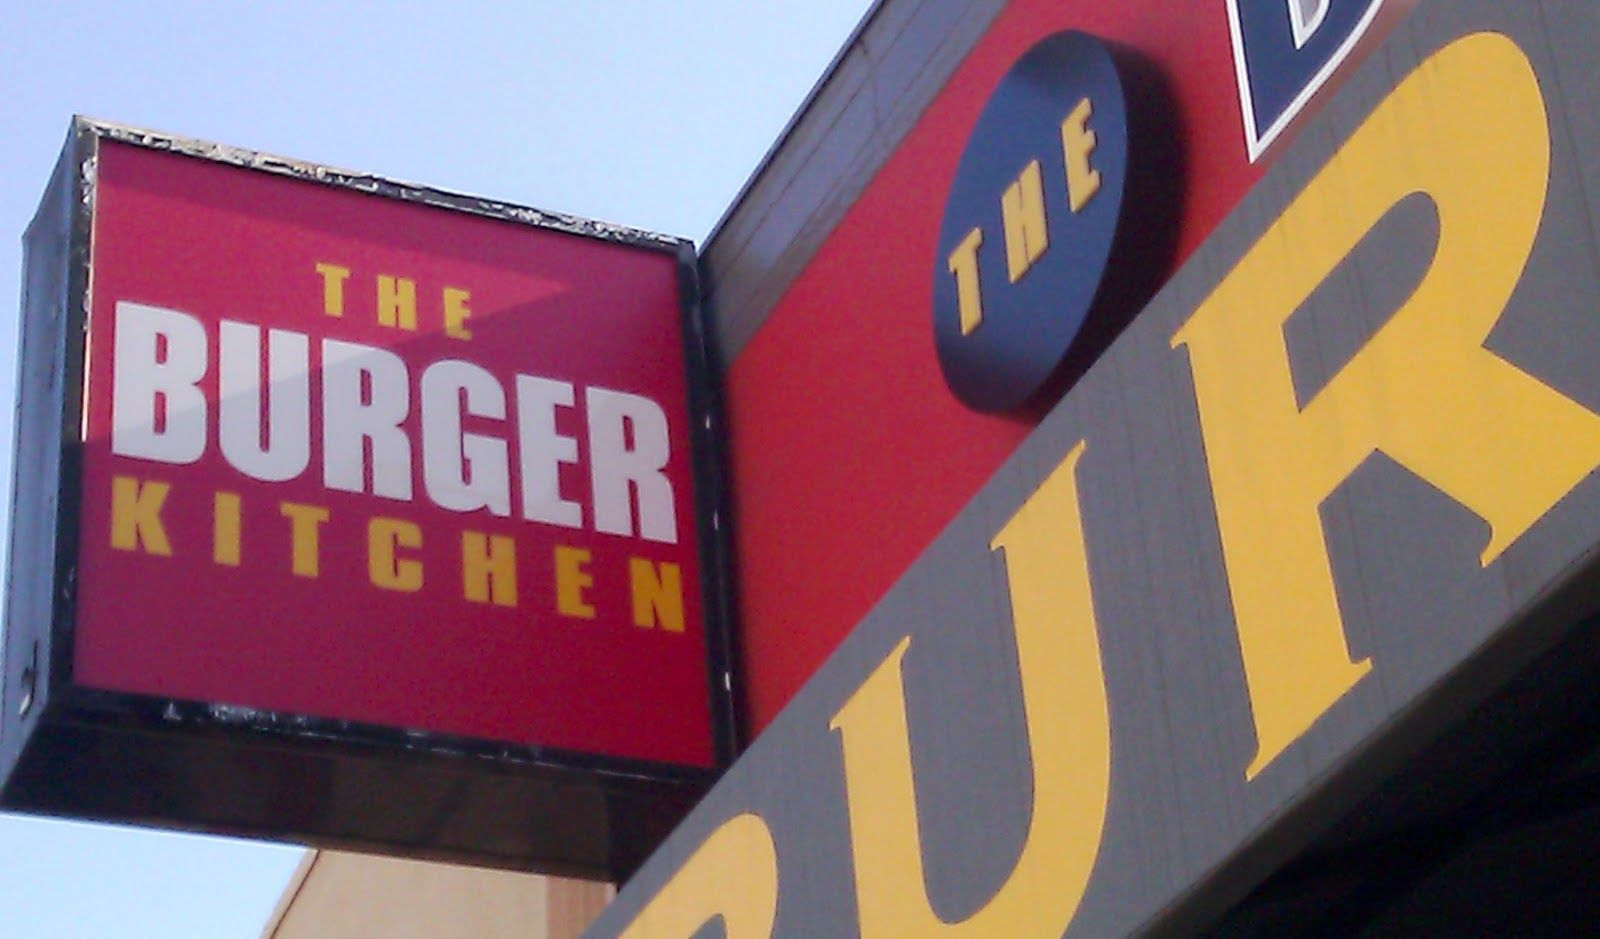 The Burger Kitchen Was Featured On Chef Gordom Ramsayu0027s Kitchen Nightmares,  But Even That Couldnu0027t Save This 3rd Street LA Restaurant.